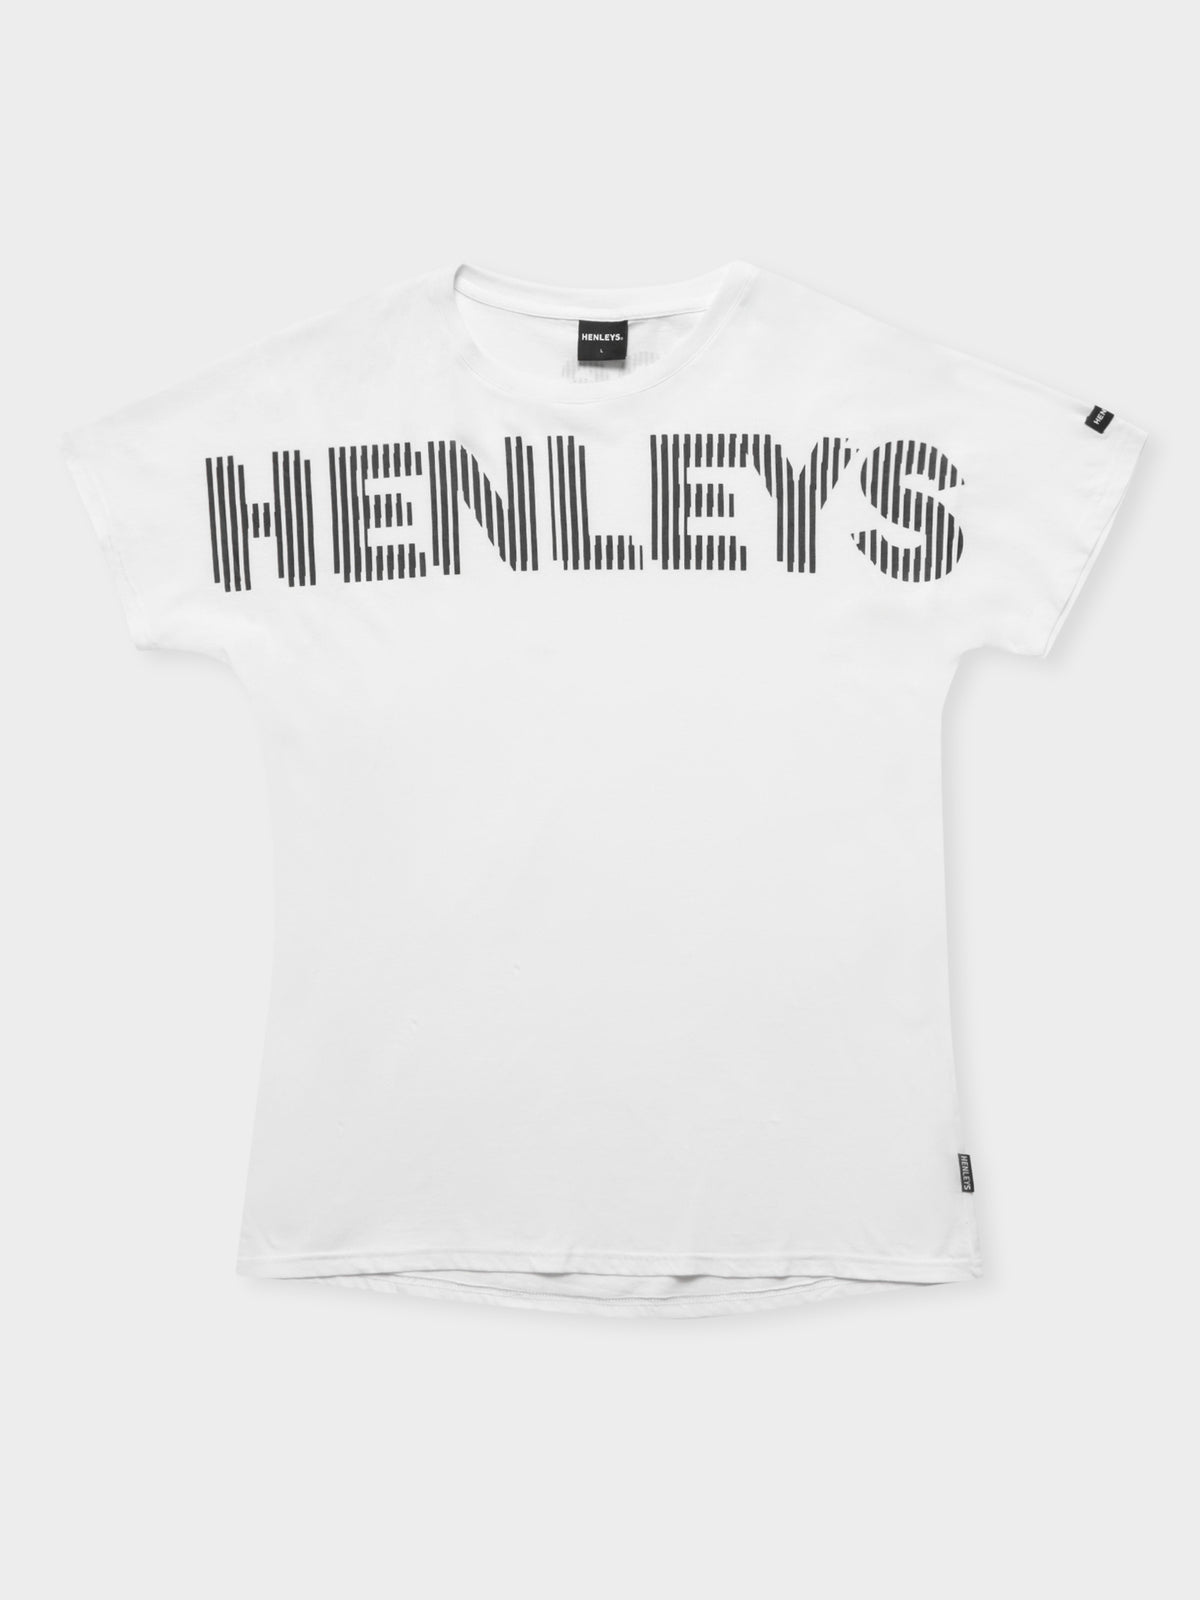 Reeves T-Shirt in White